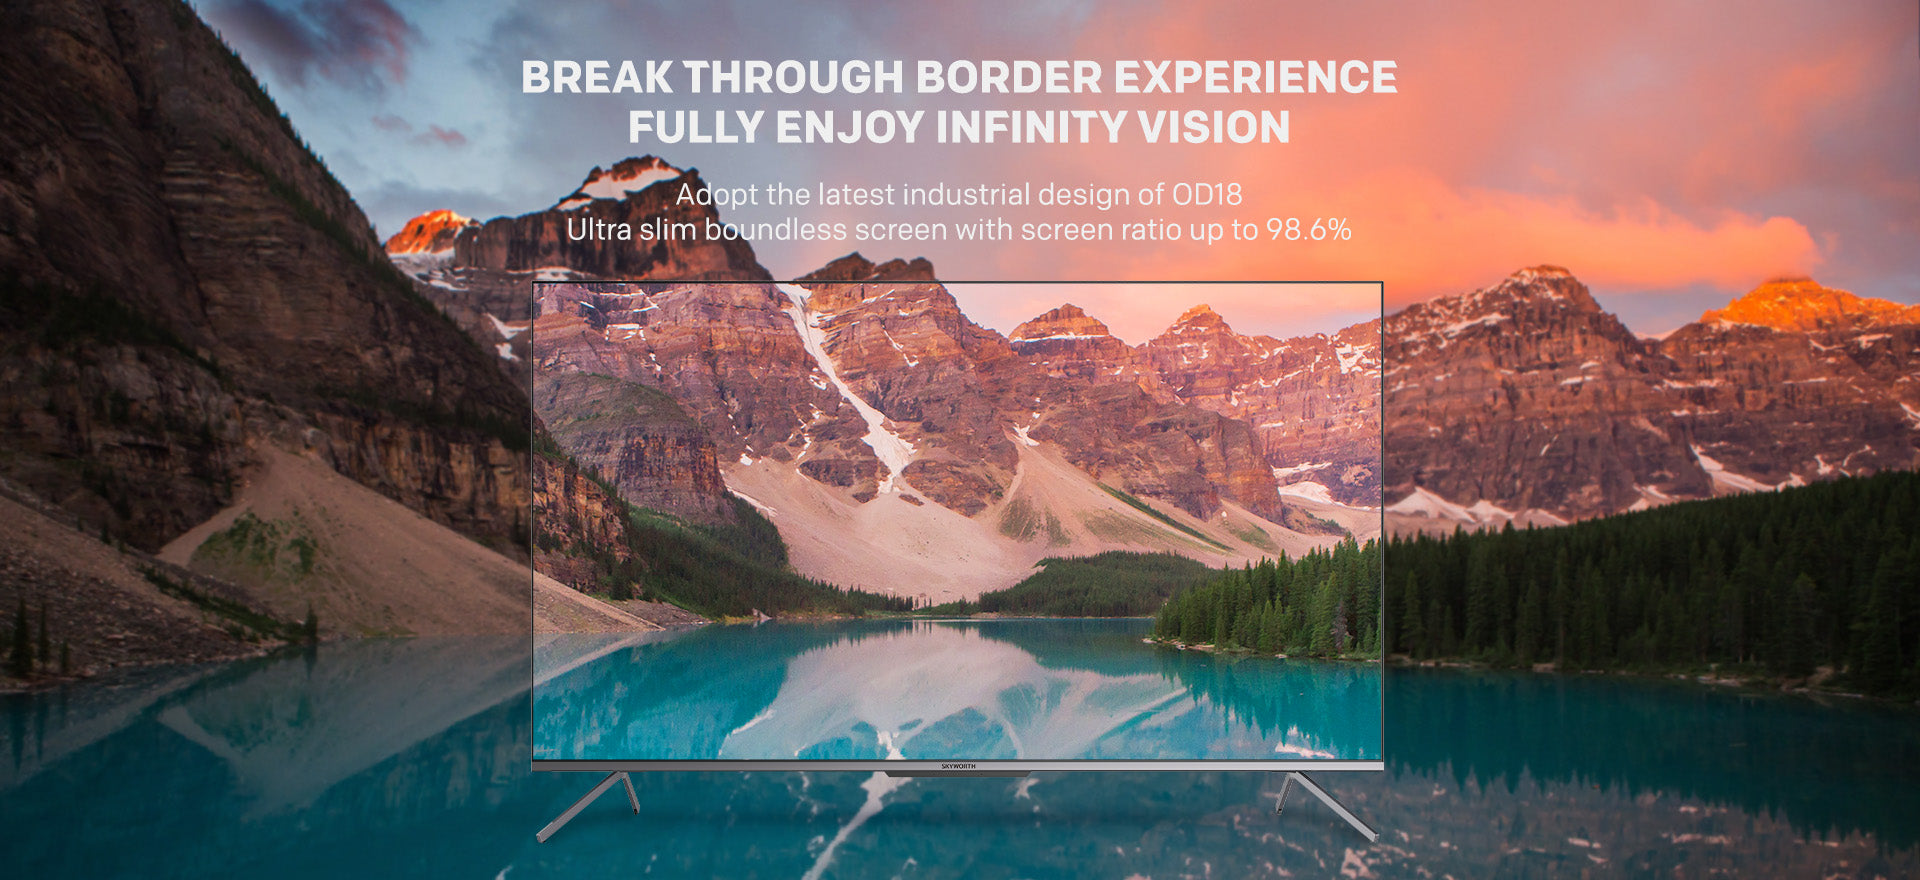 Infinity vision